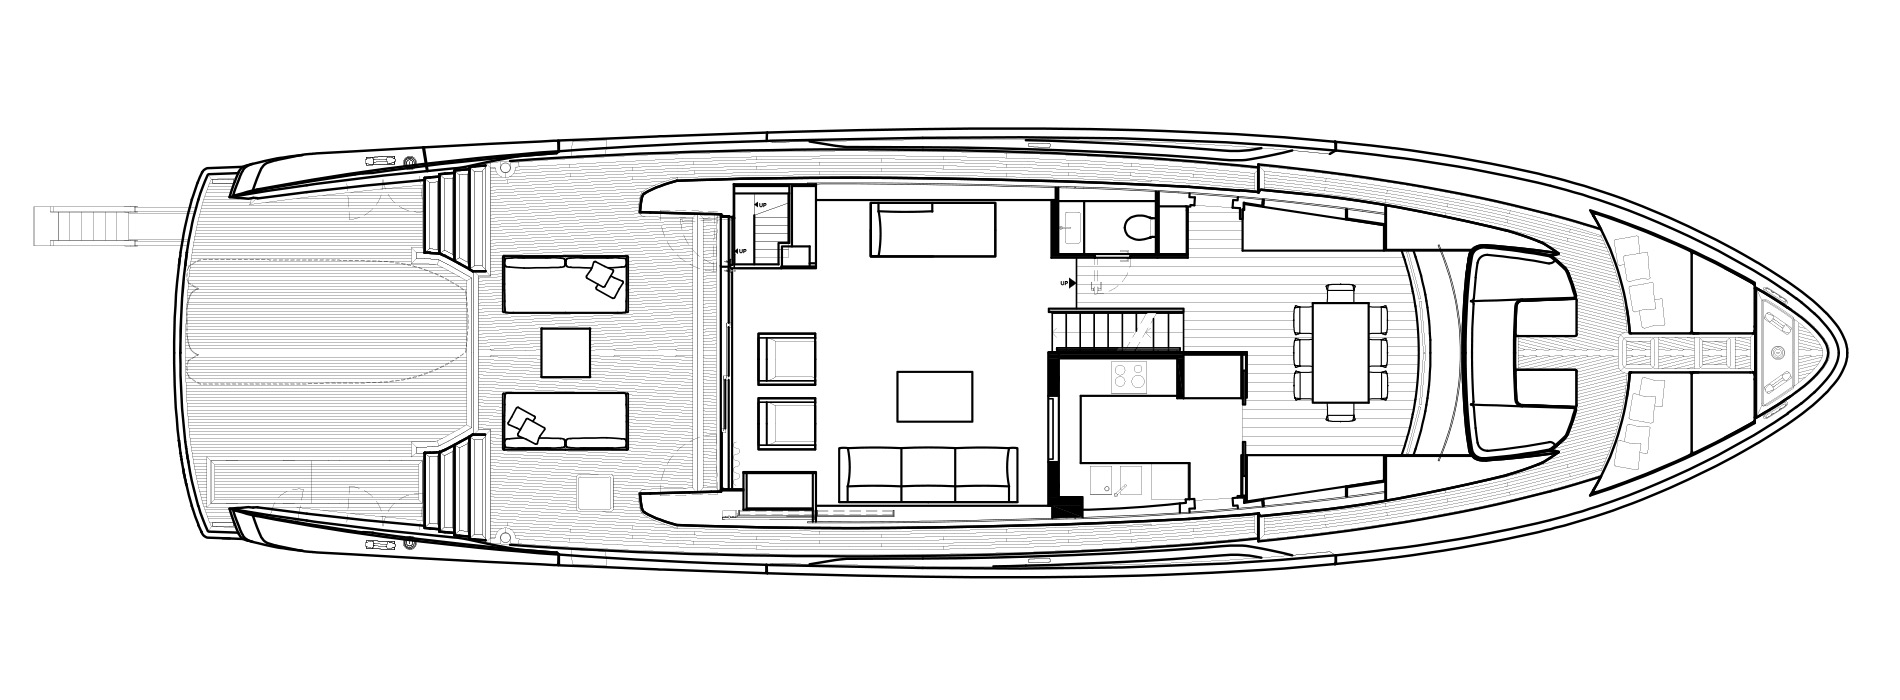 Sanlorenzo Yachts SX88 Hauptdeck Versione A Closed Galley